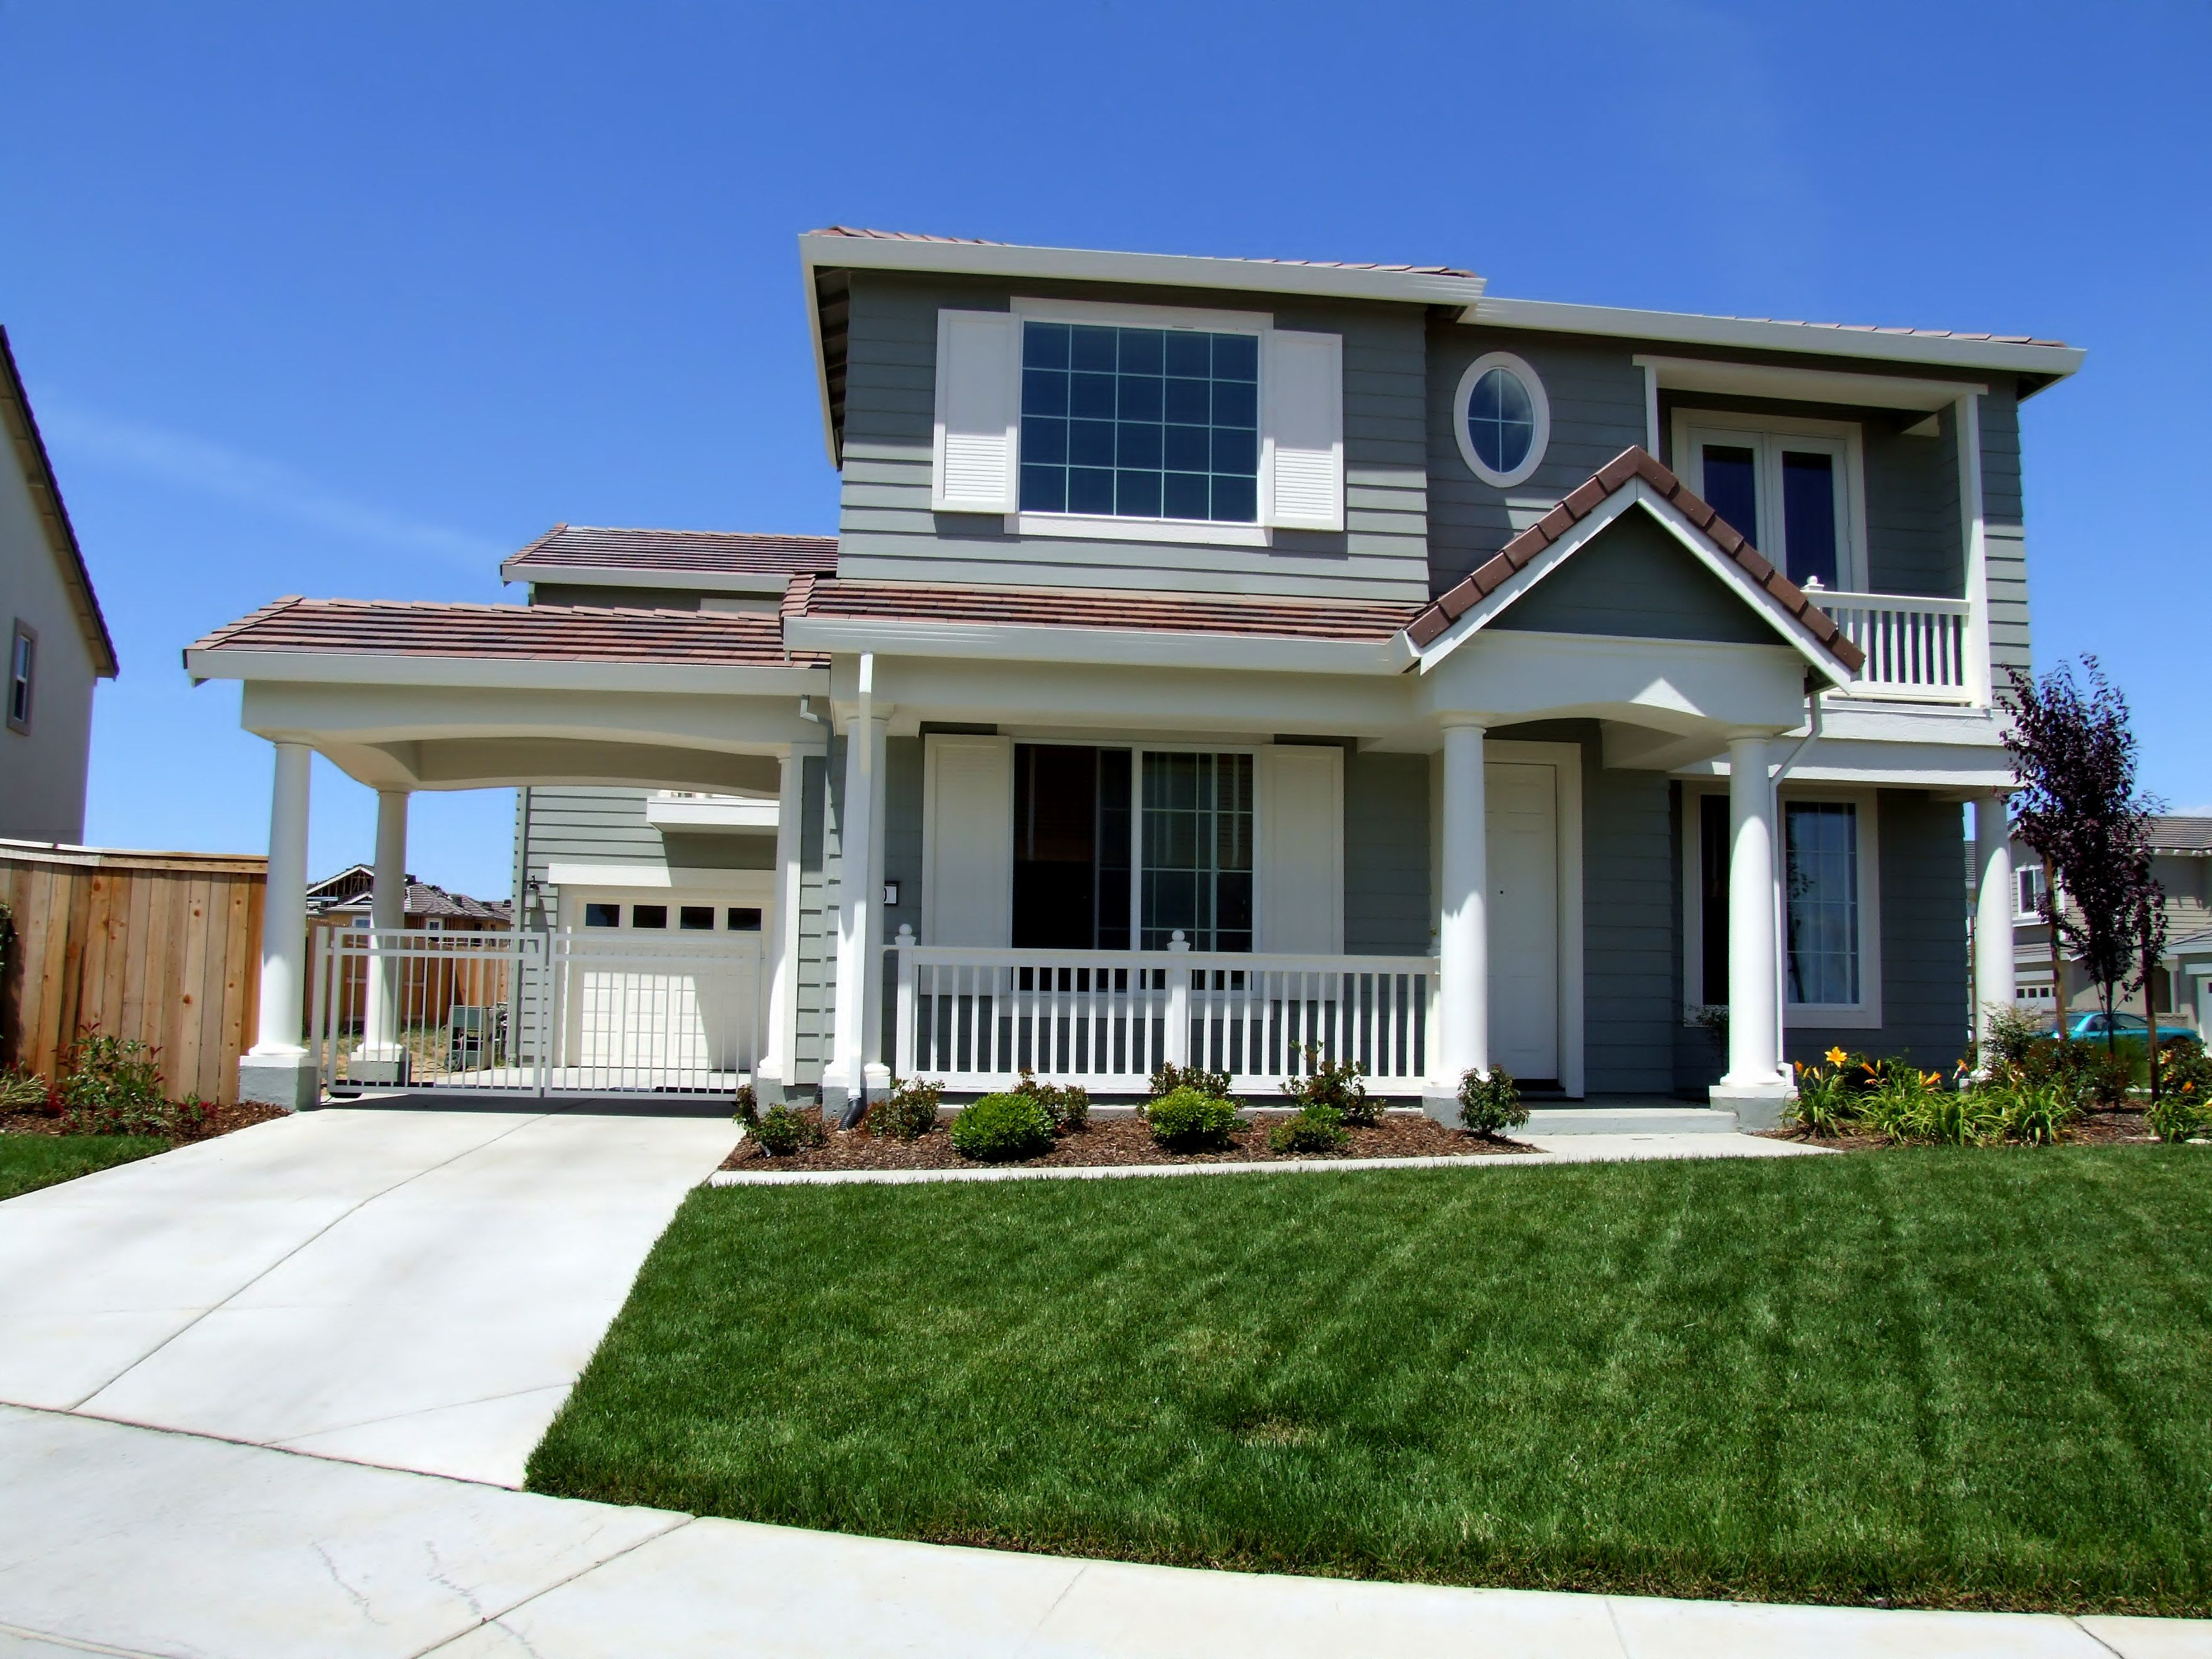 Landscaping Around Foundation Your Home Cheap Home Insurance